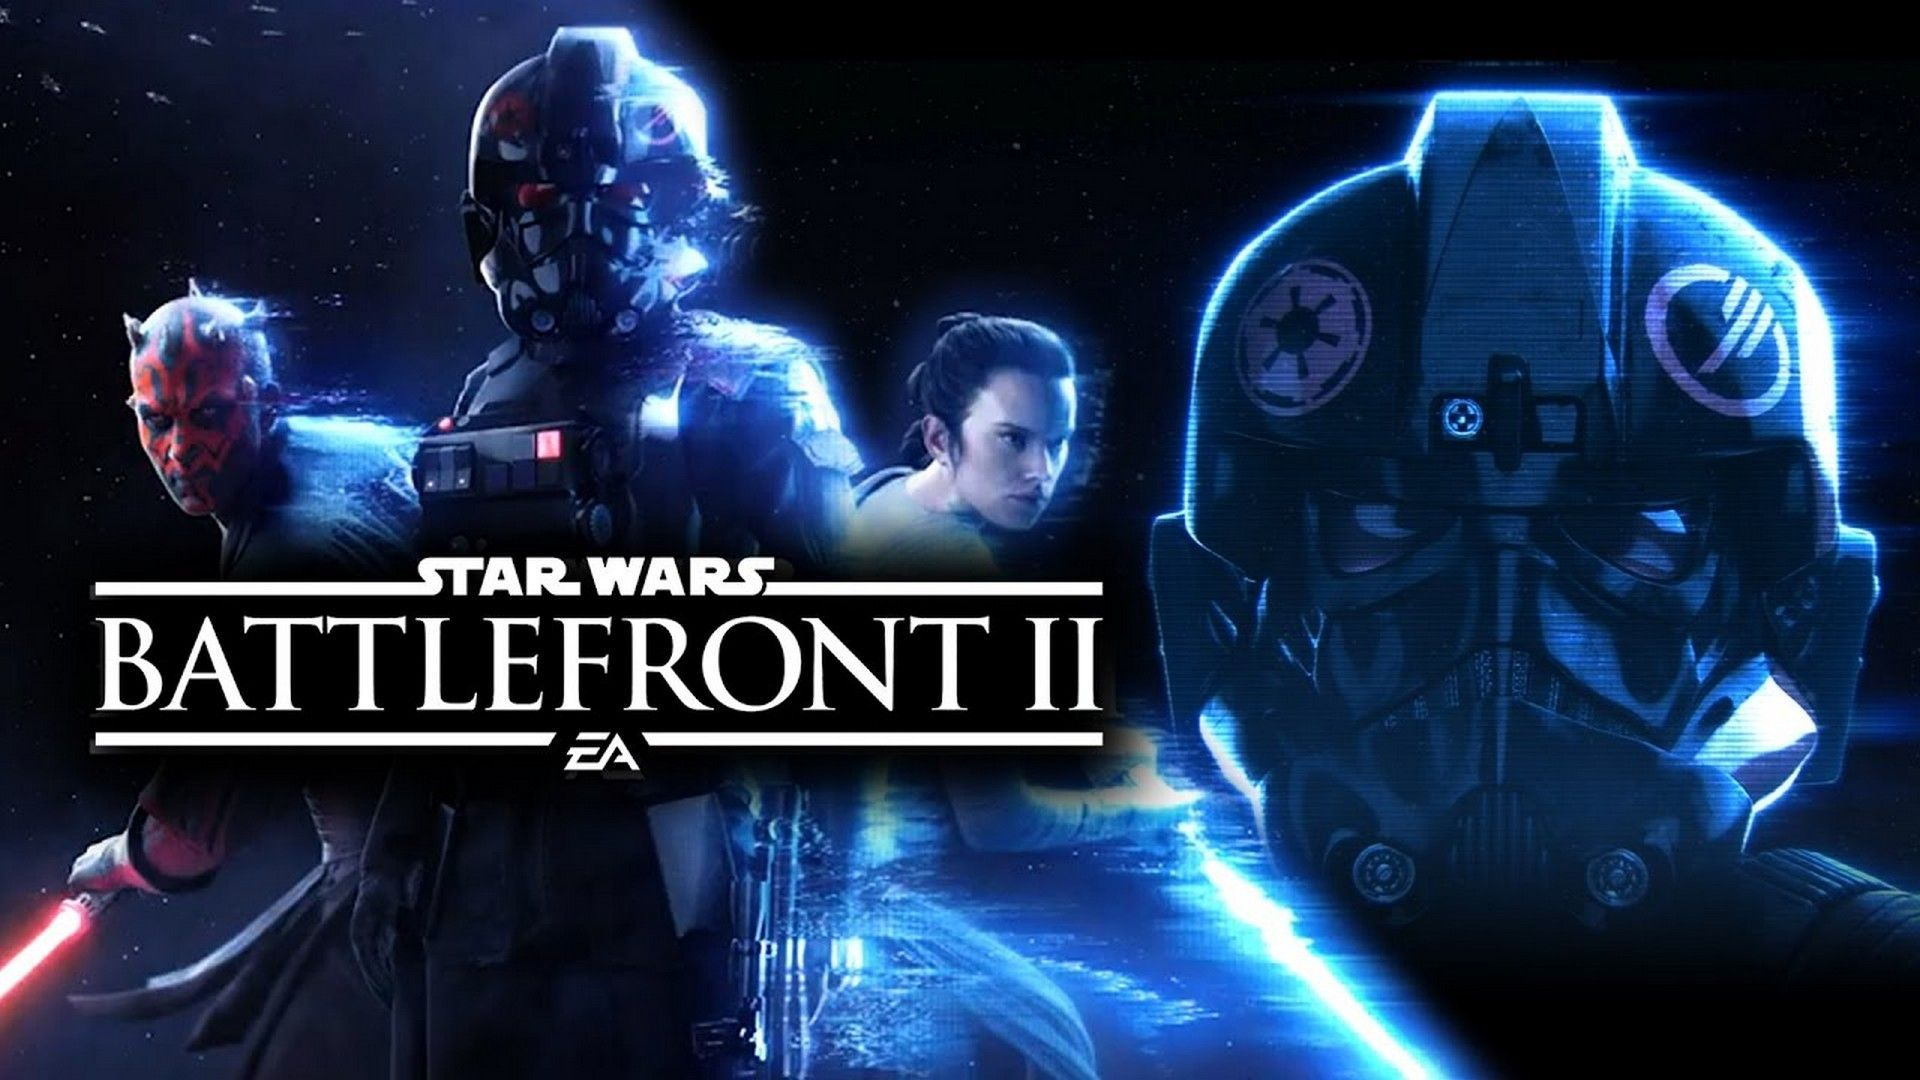 Star Wars Battlefront 2 Wallpapers Top Free Star Wars